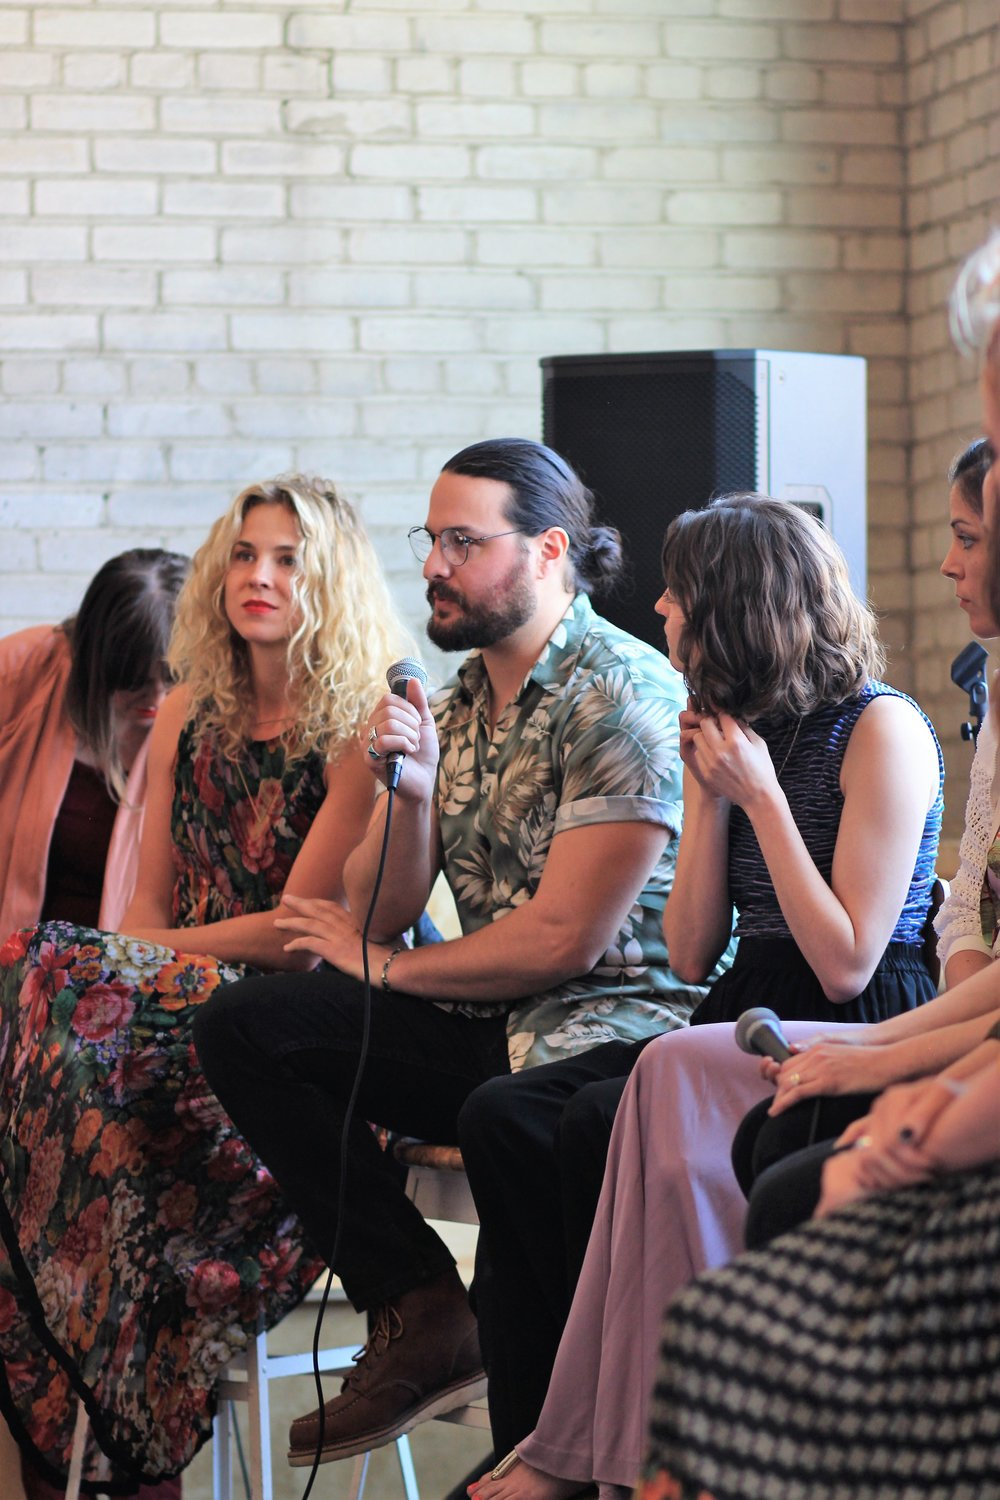 During the panel discussion